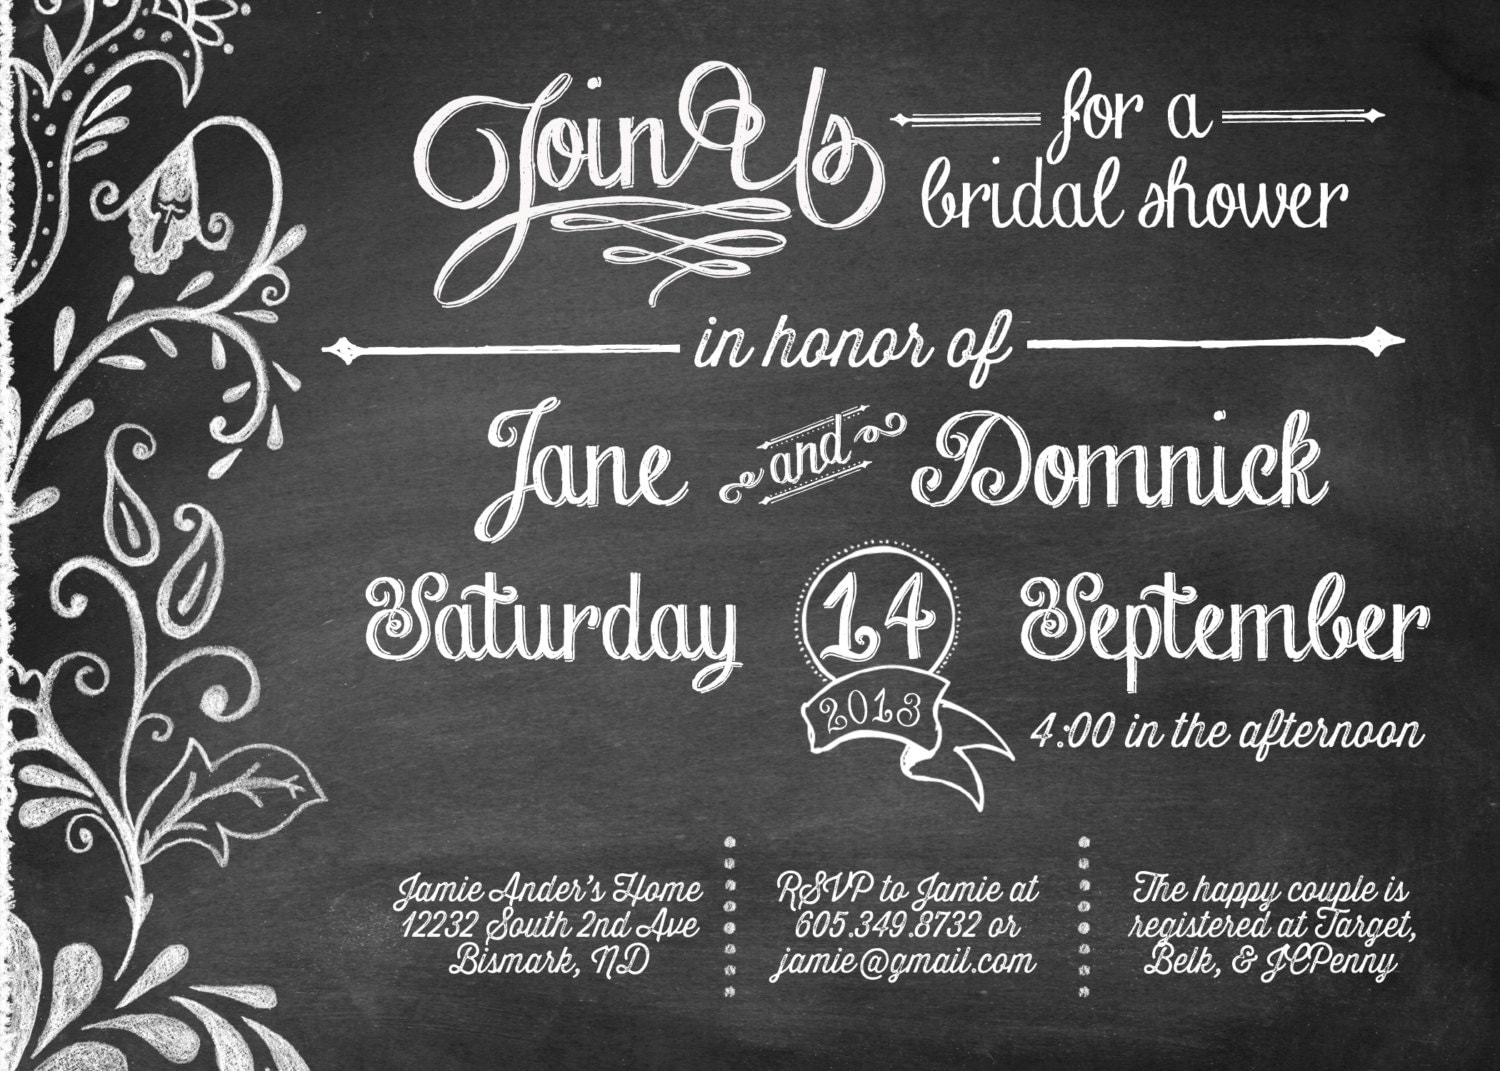 Disney Bridal Shower Invitations was perfect invitations layout